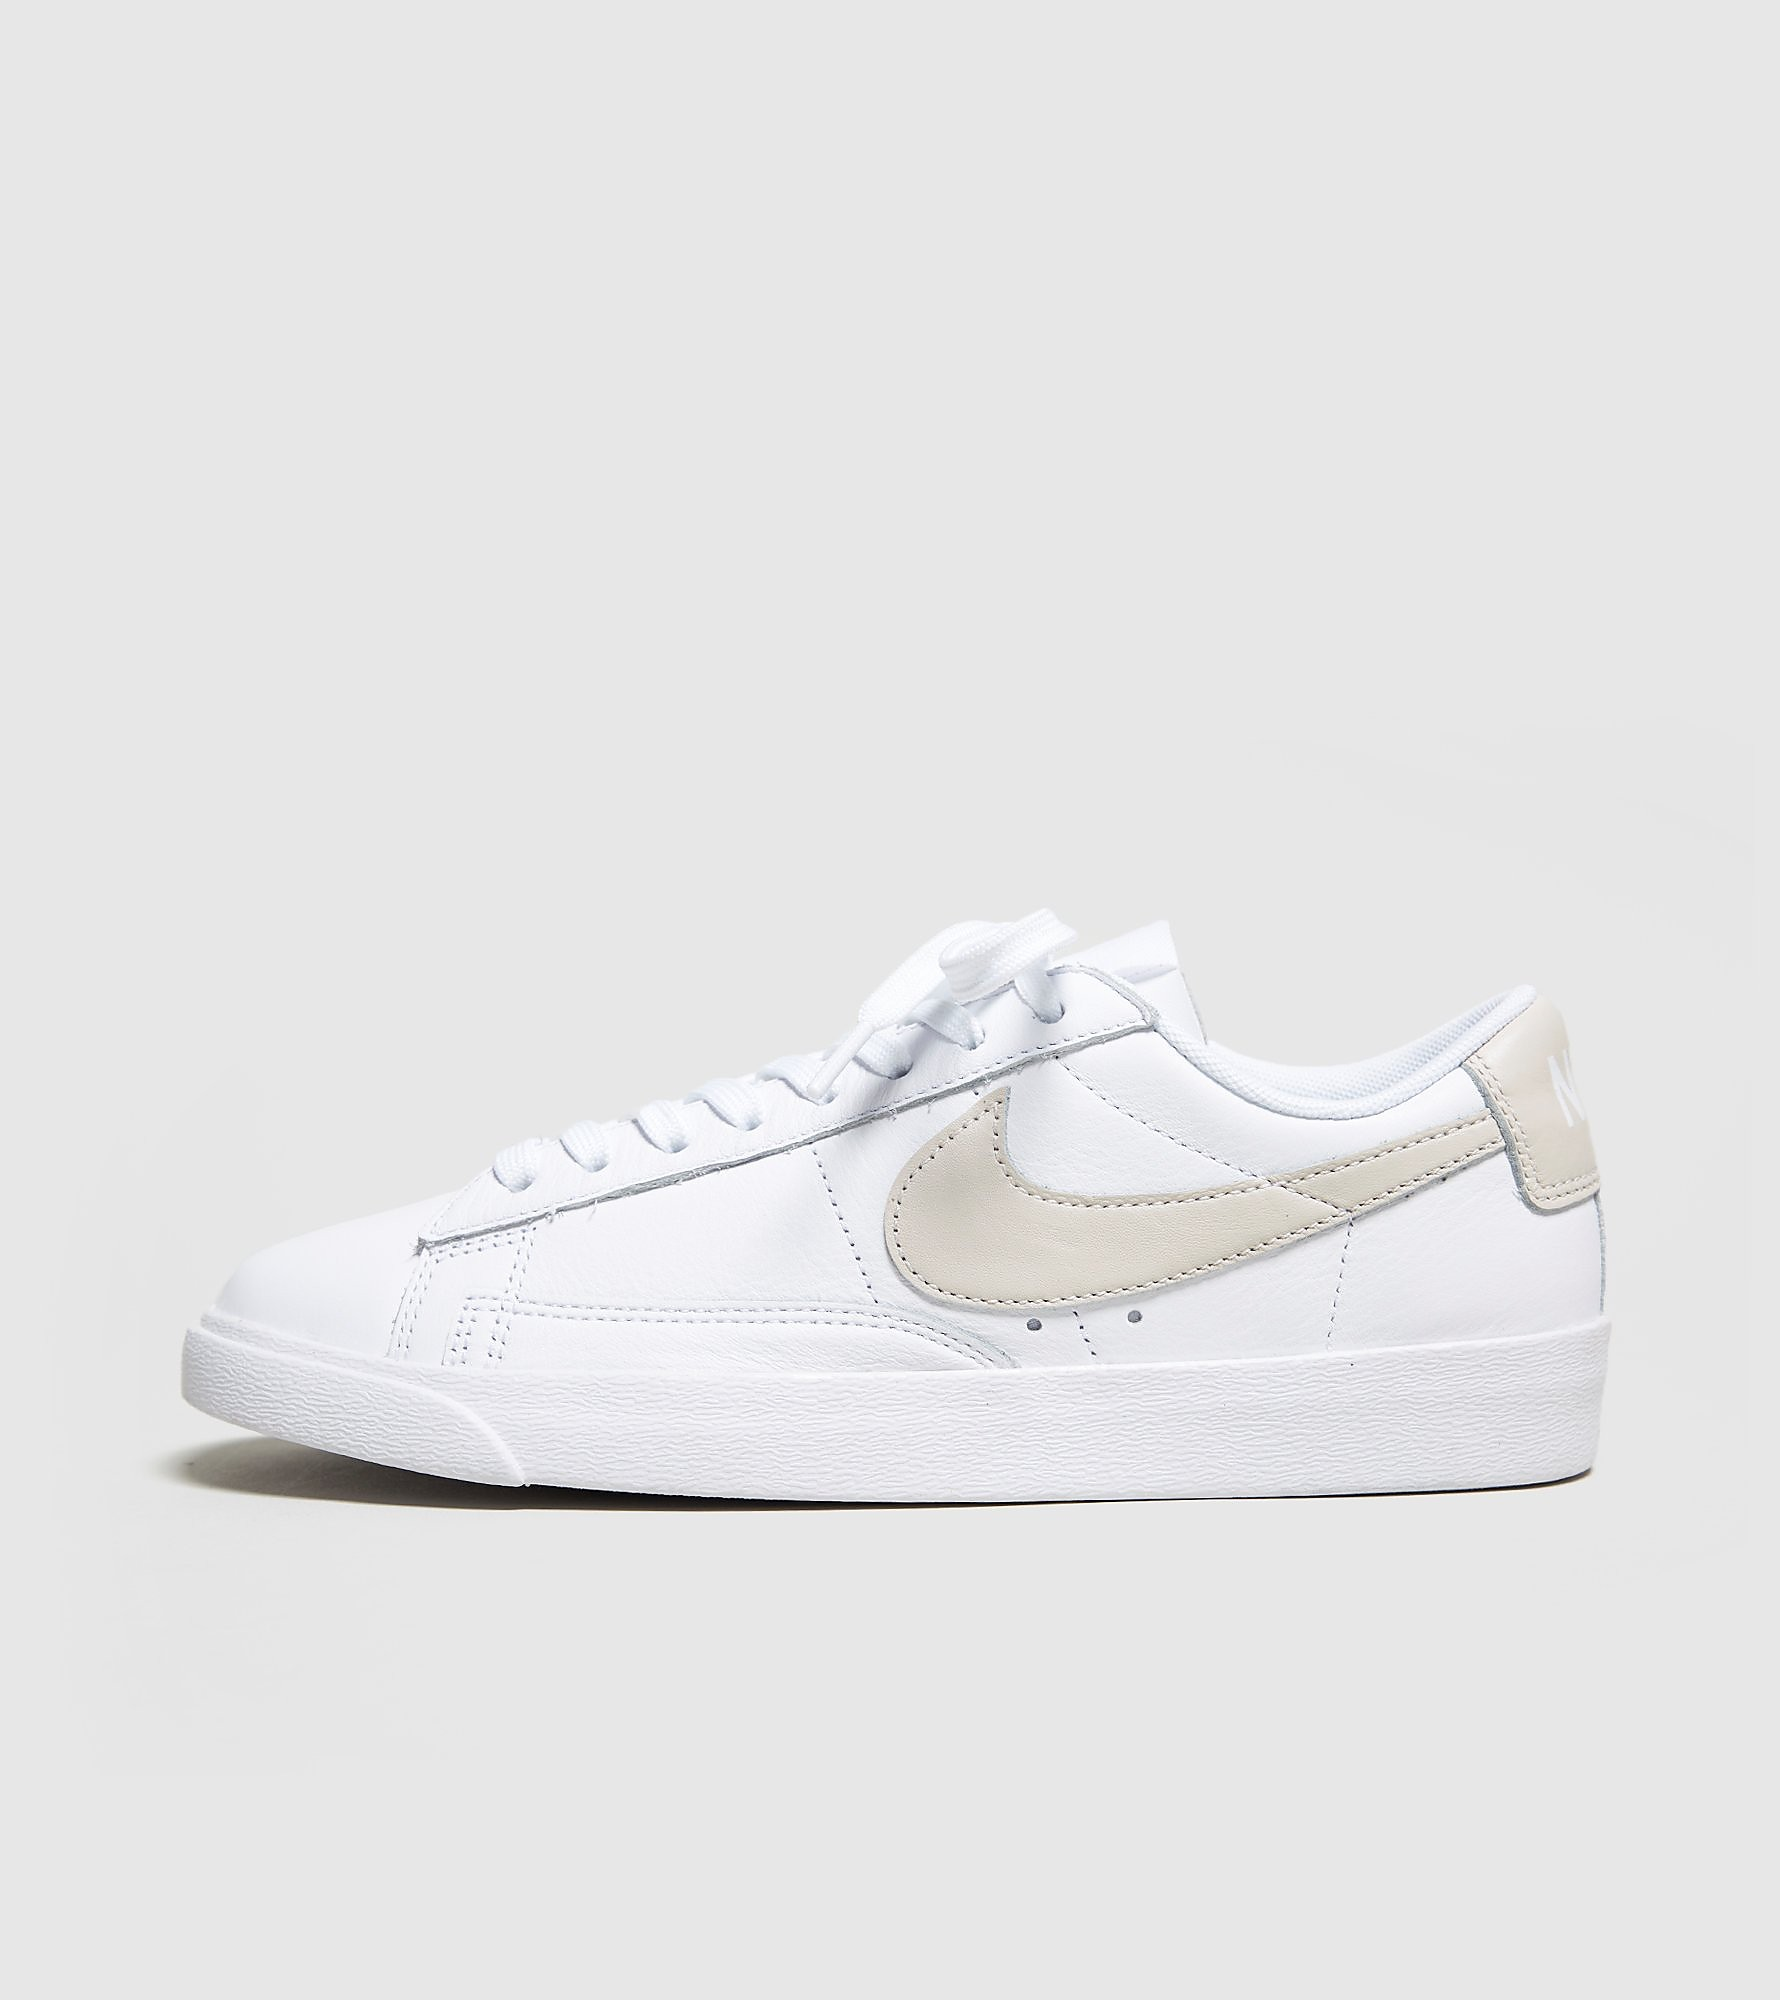 Nike Blazer Low Women's